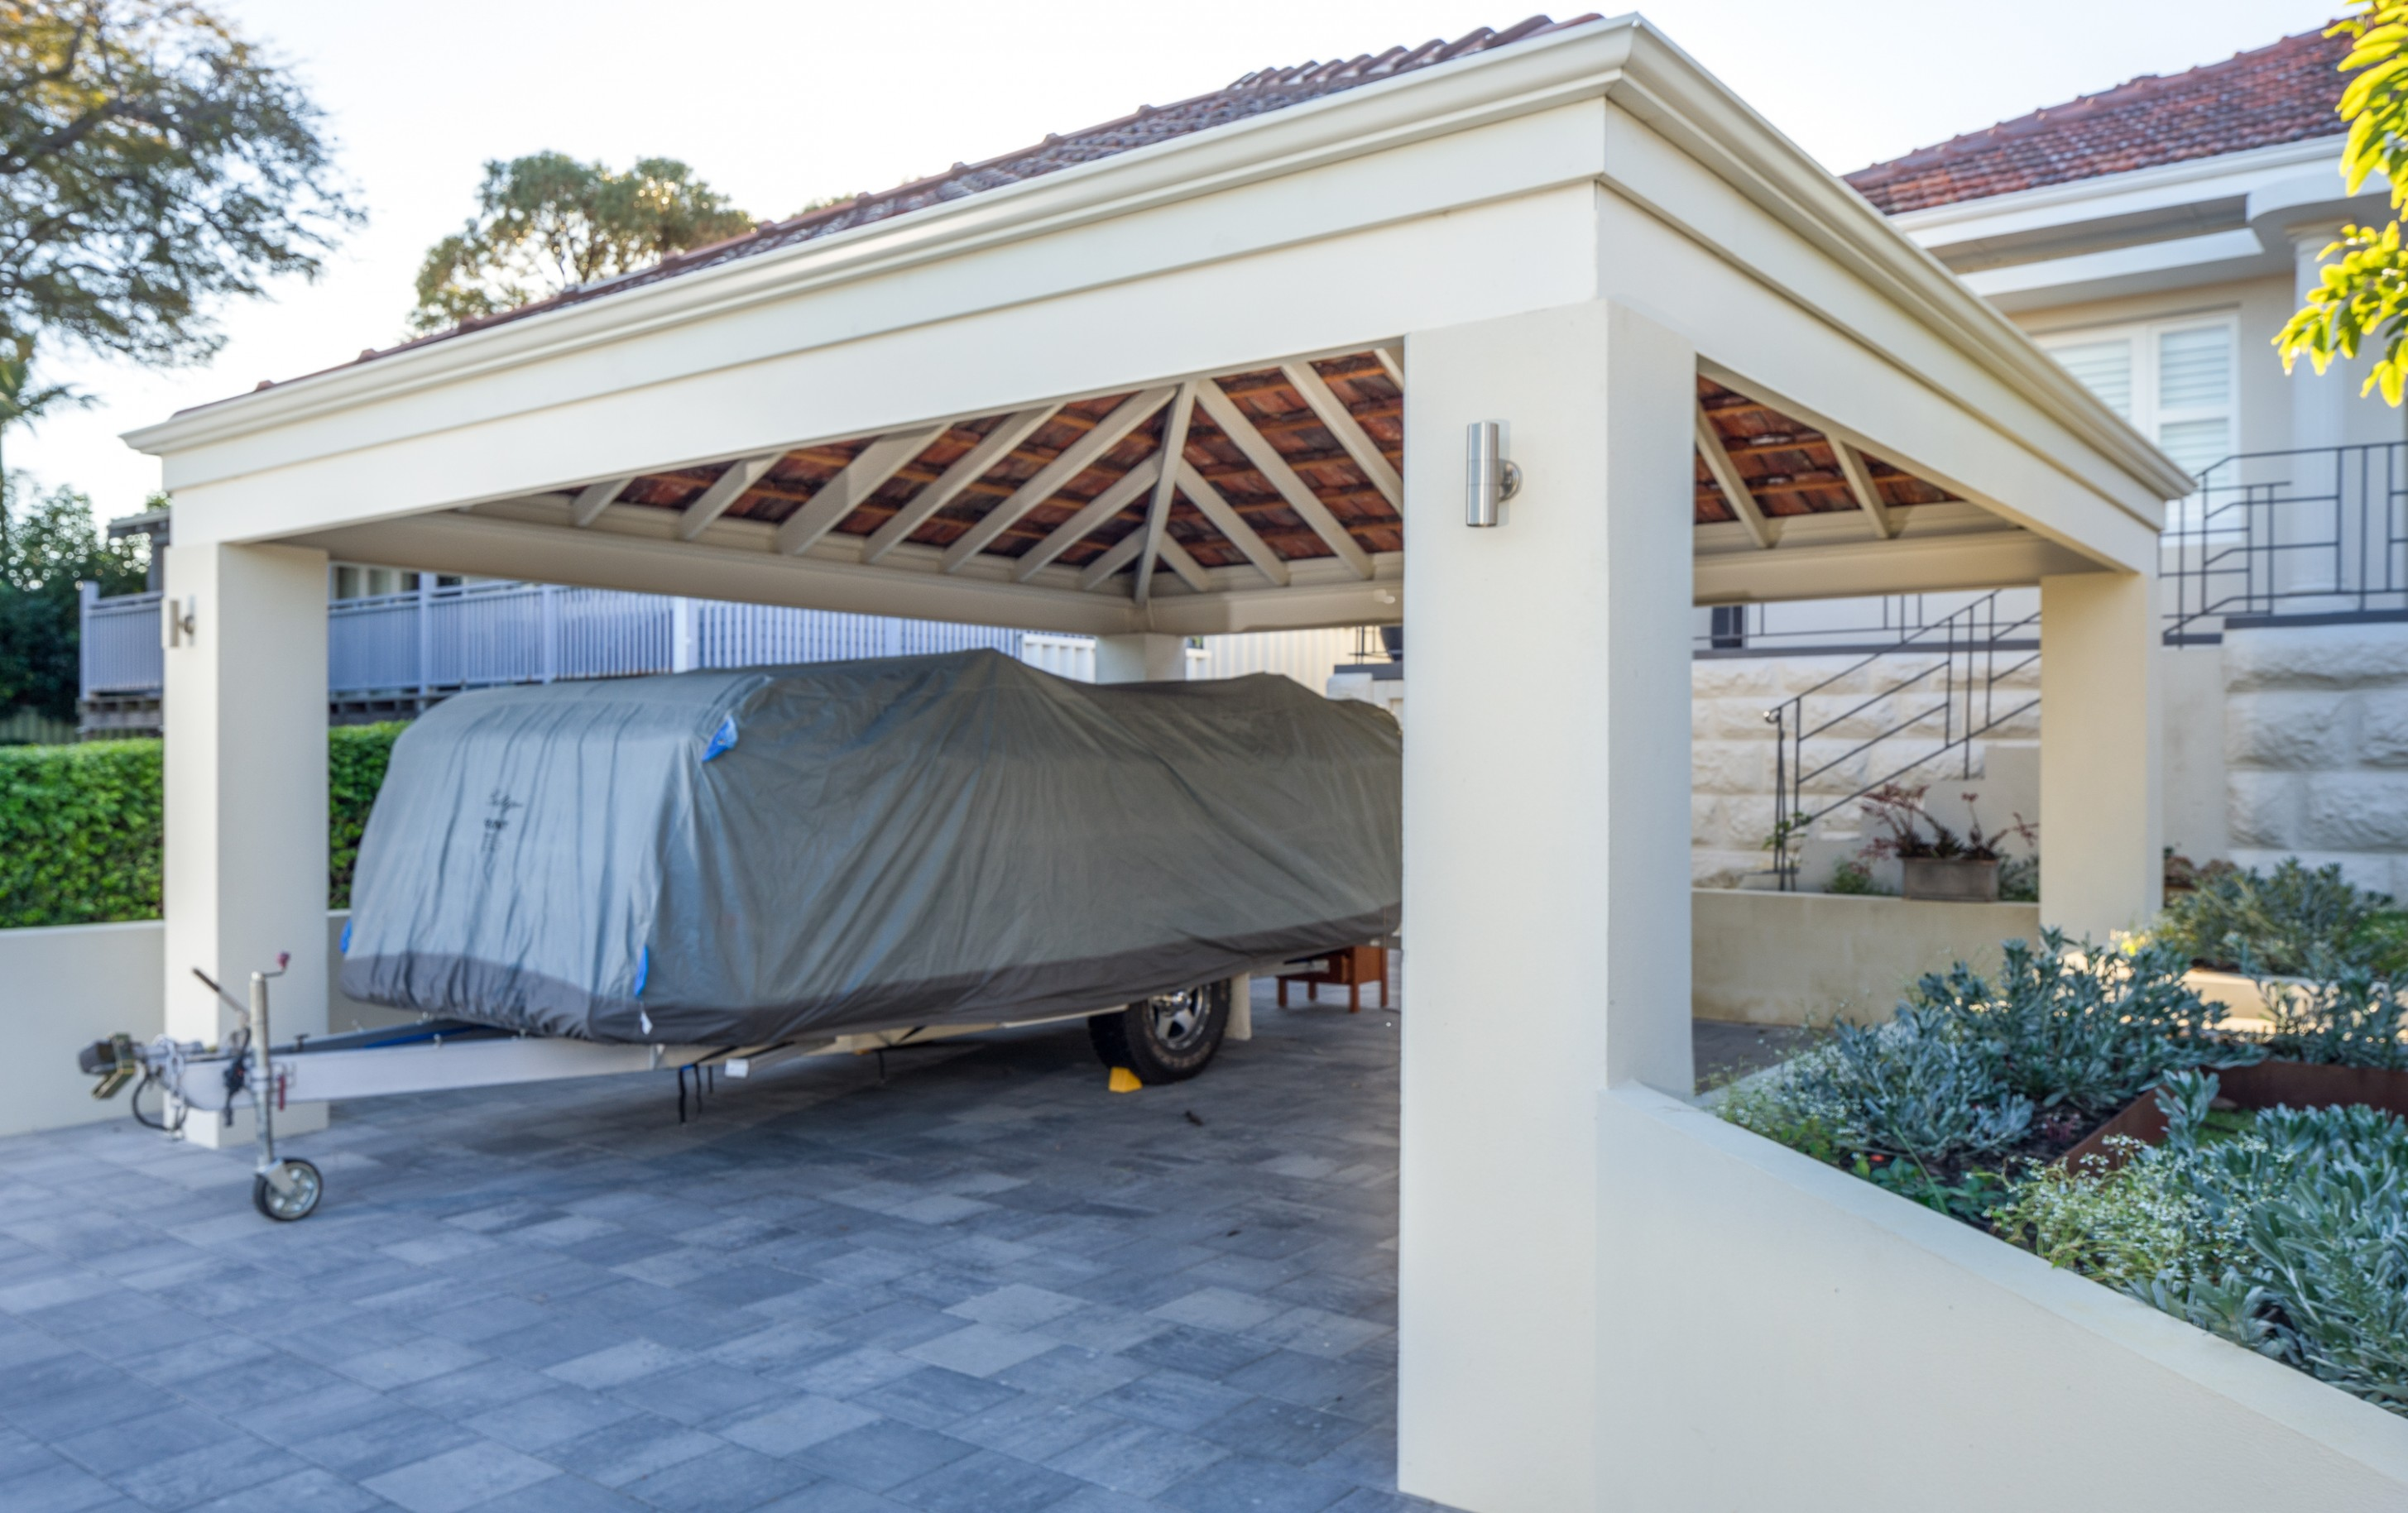 8 Secrets About Carport Canopy Kit That Has Never Been Revealed For The Past 8 Years | carport canopy kit